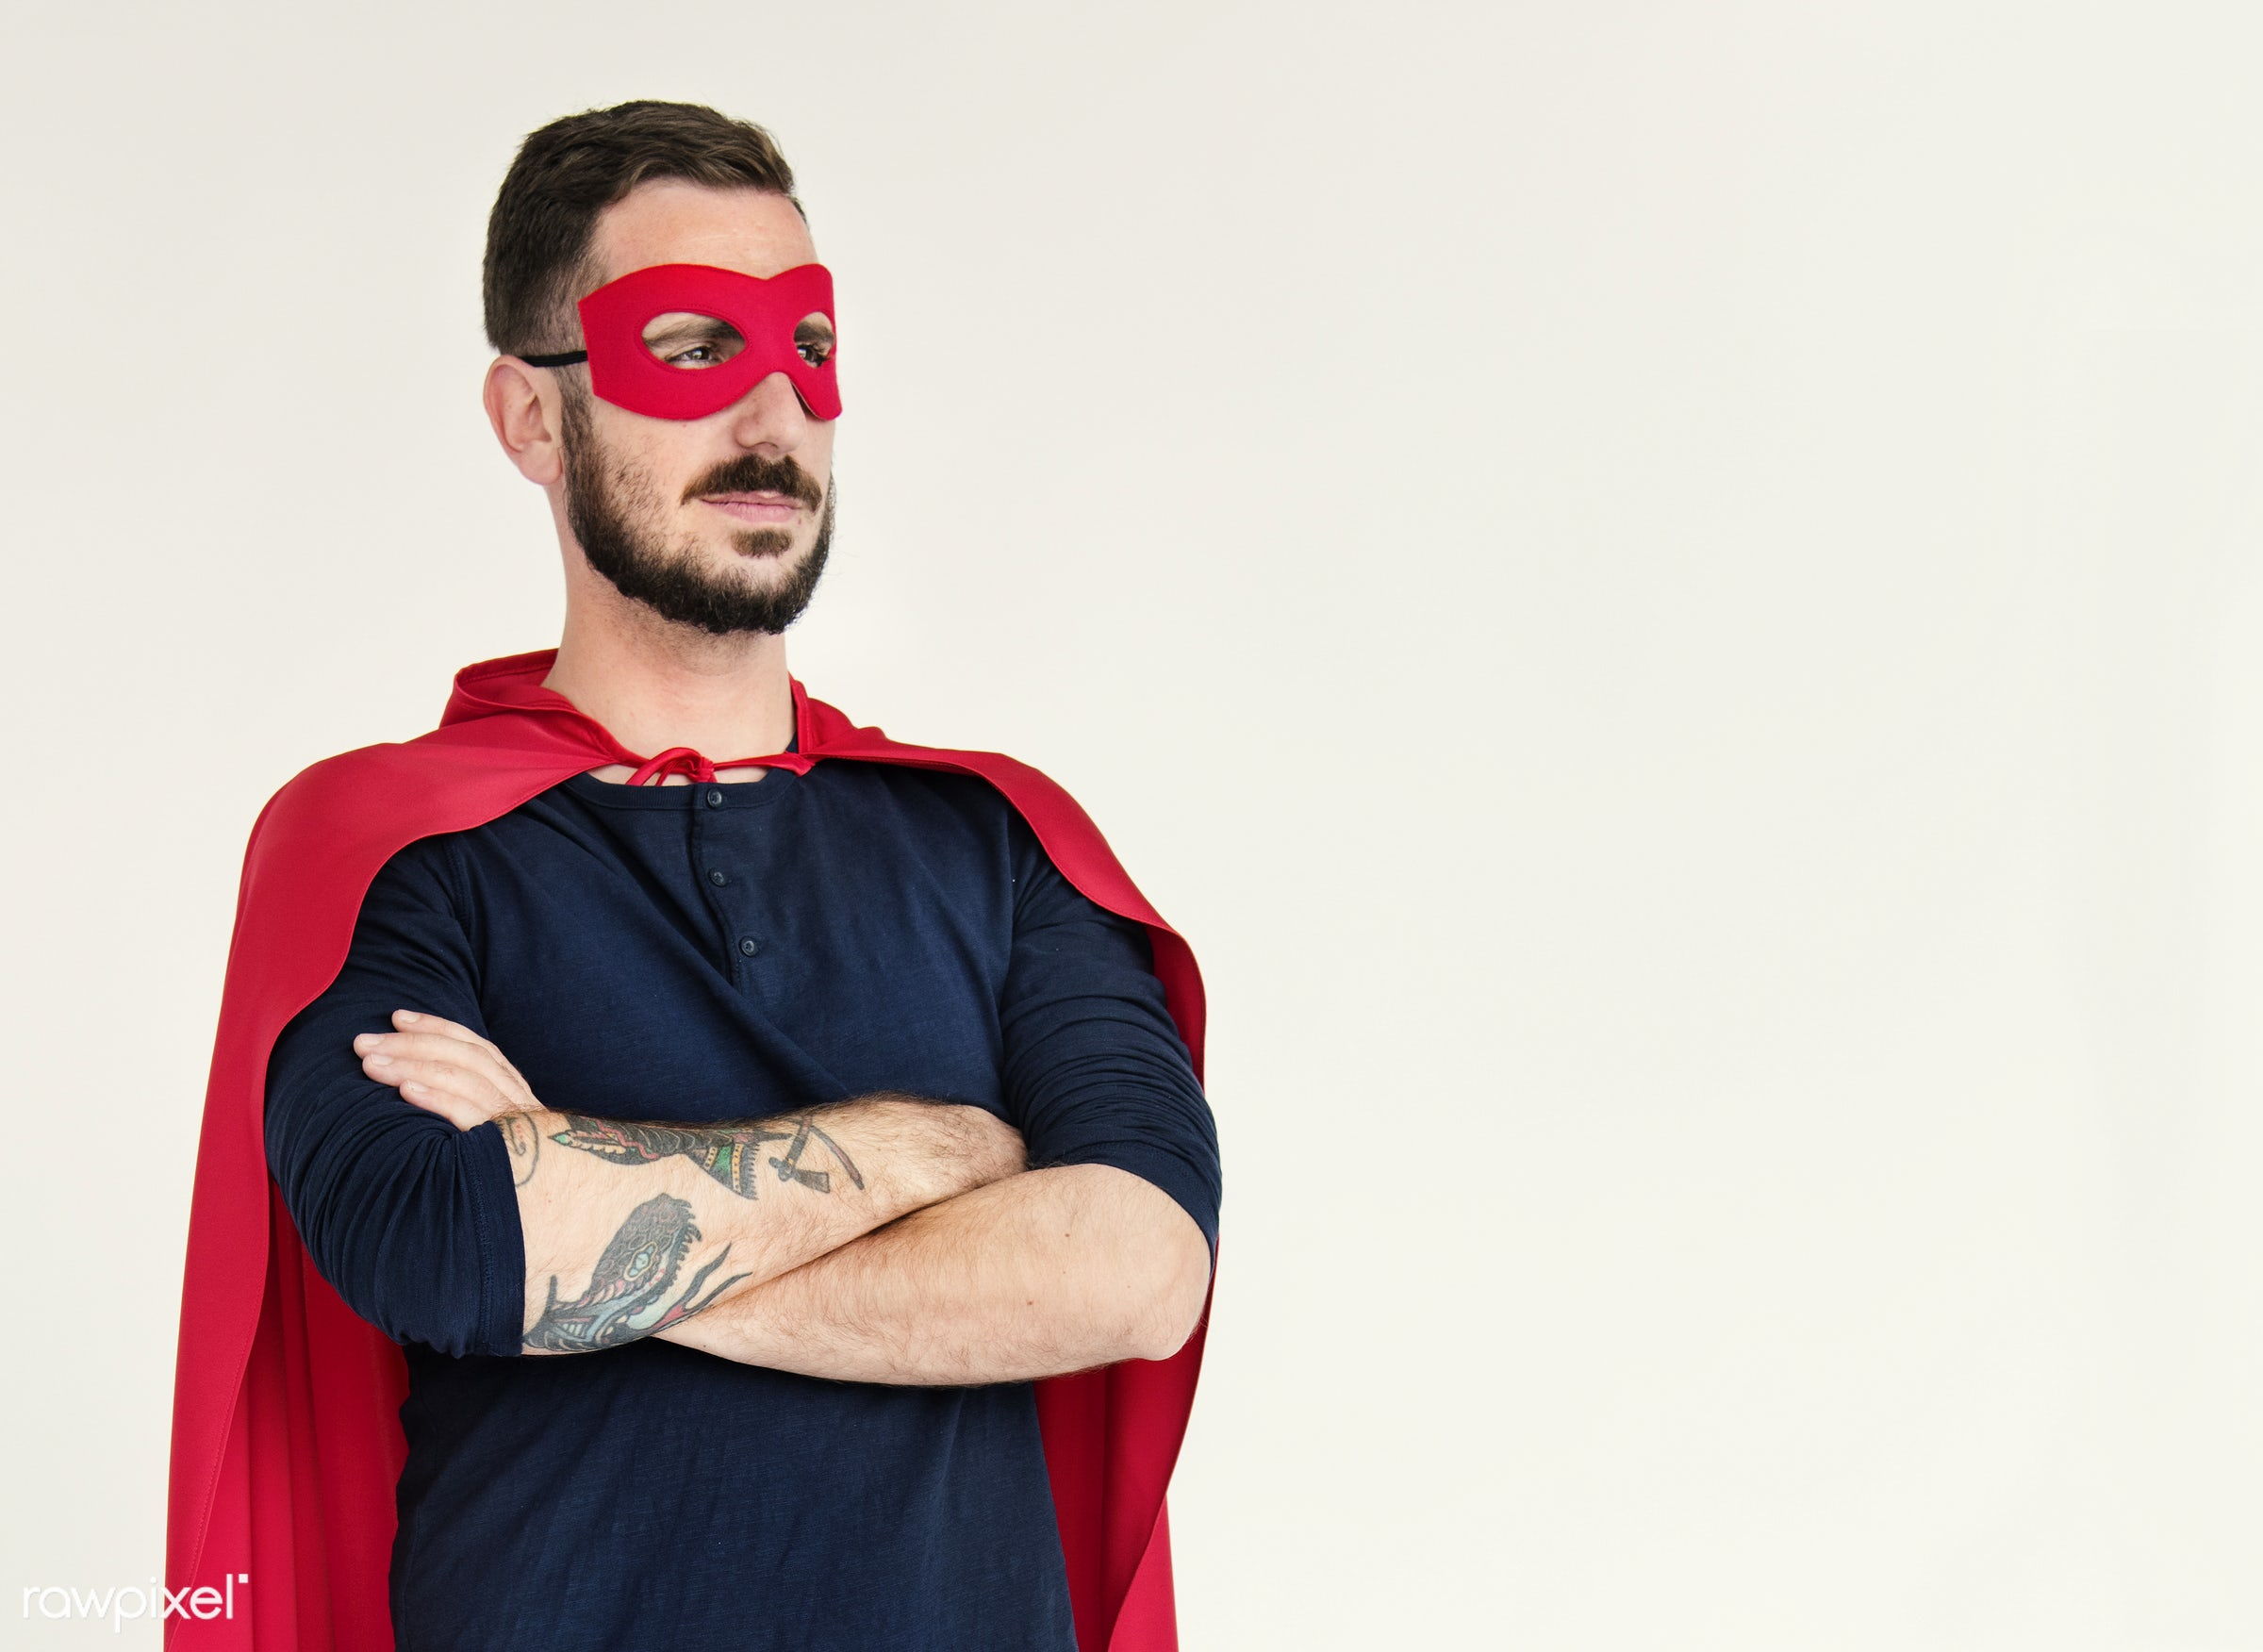 studio, person, rescue, mask, people, caucasian, power, tattoo, cheerful, smiling, cool, isolated, achievement, hero,...